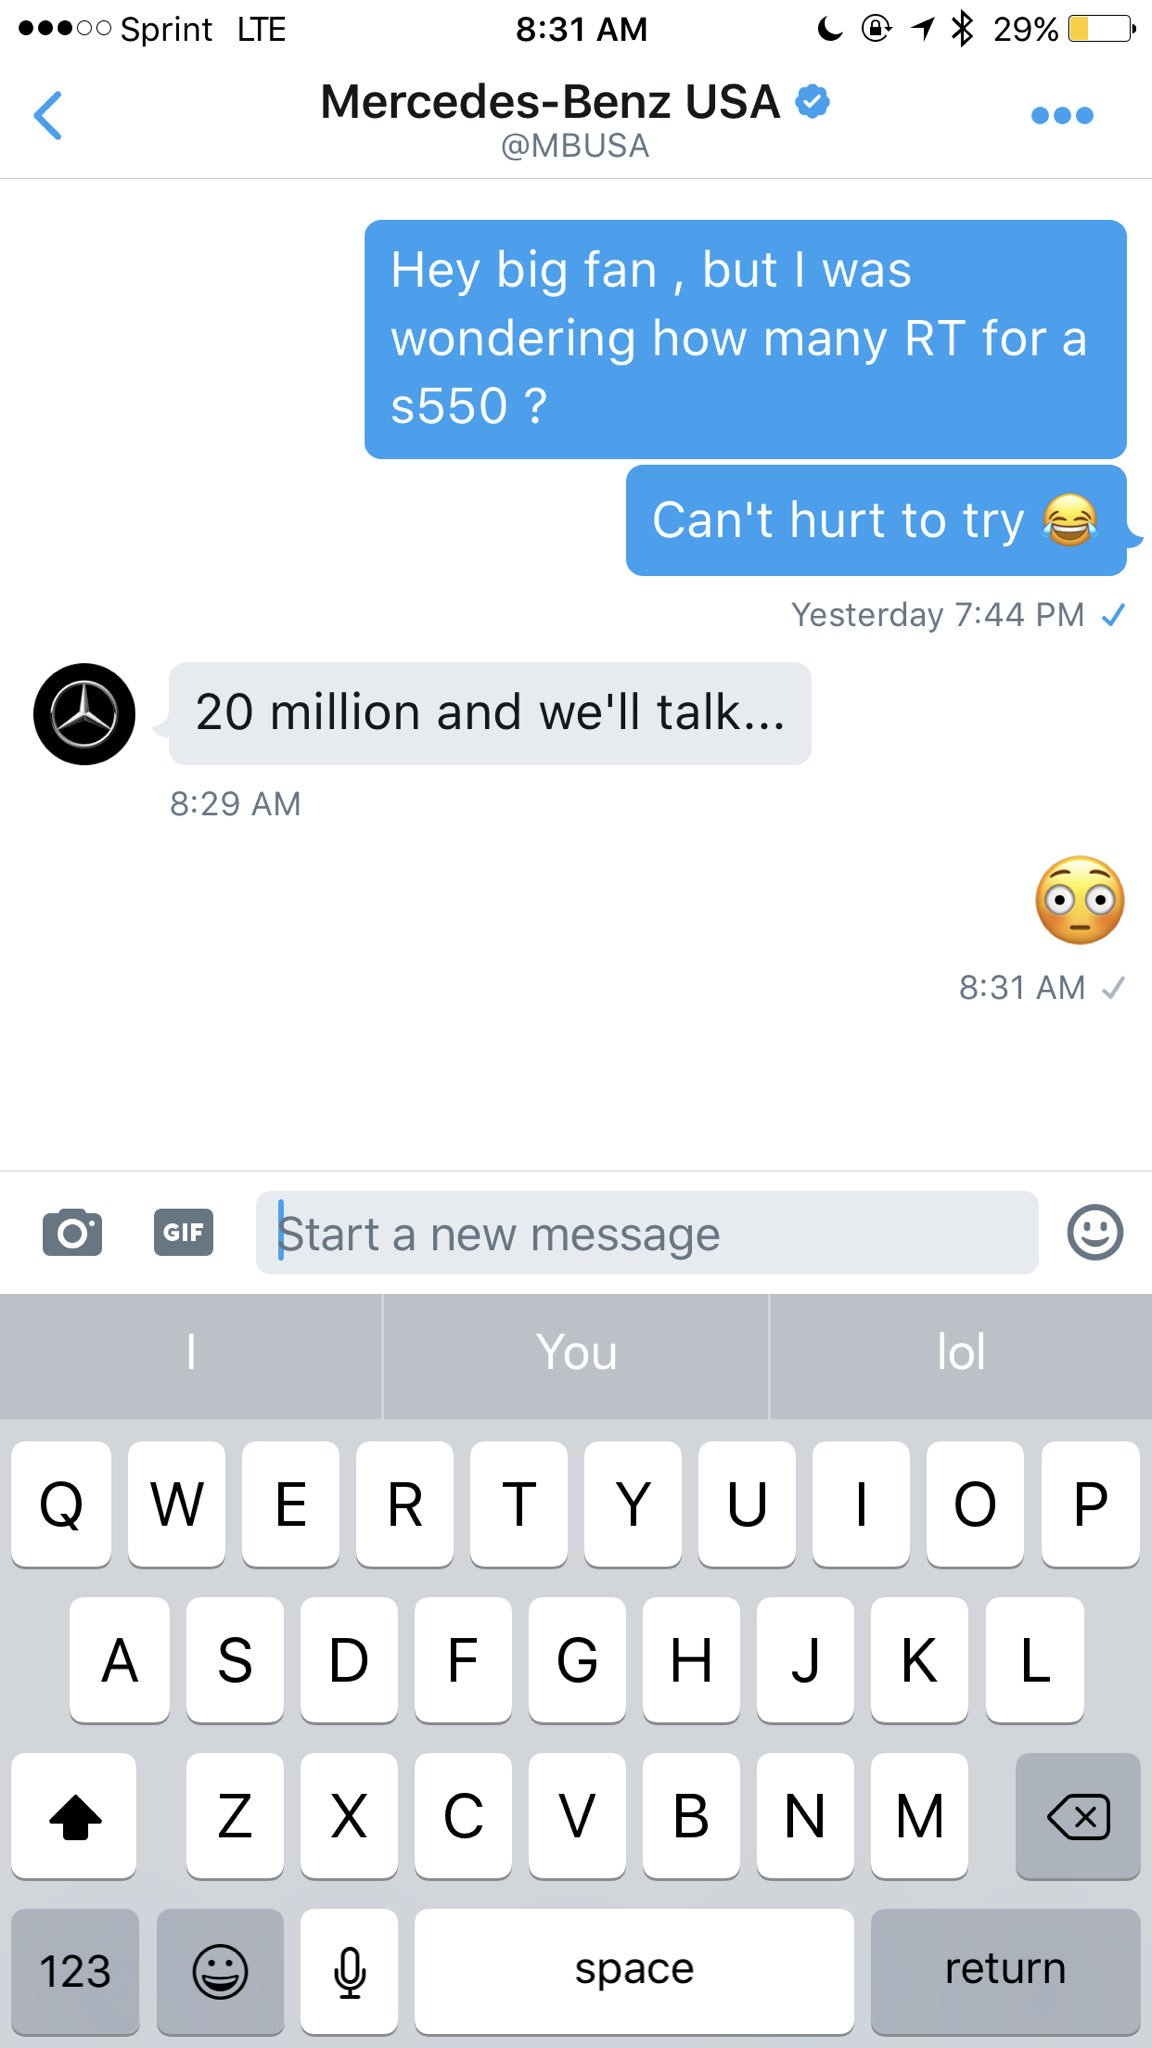 Idgaf about nothin y'all better help me get this s550 �� naw but I'm serious RT! https://t.co/KlhradZeKZ